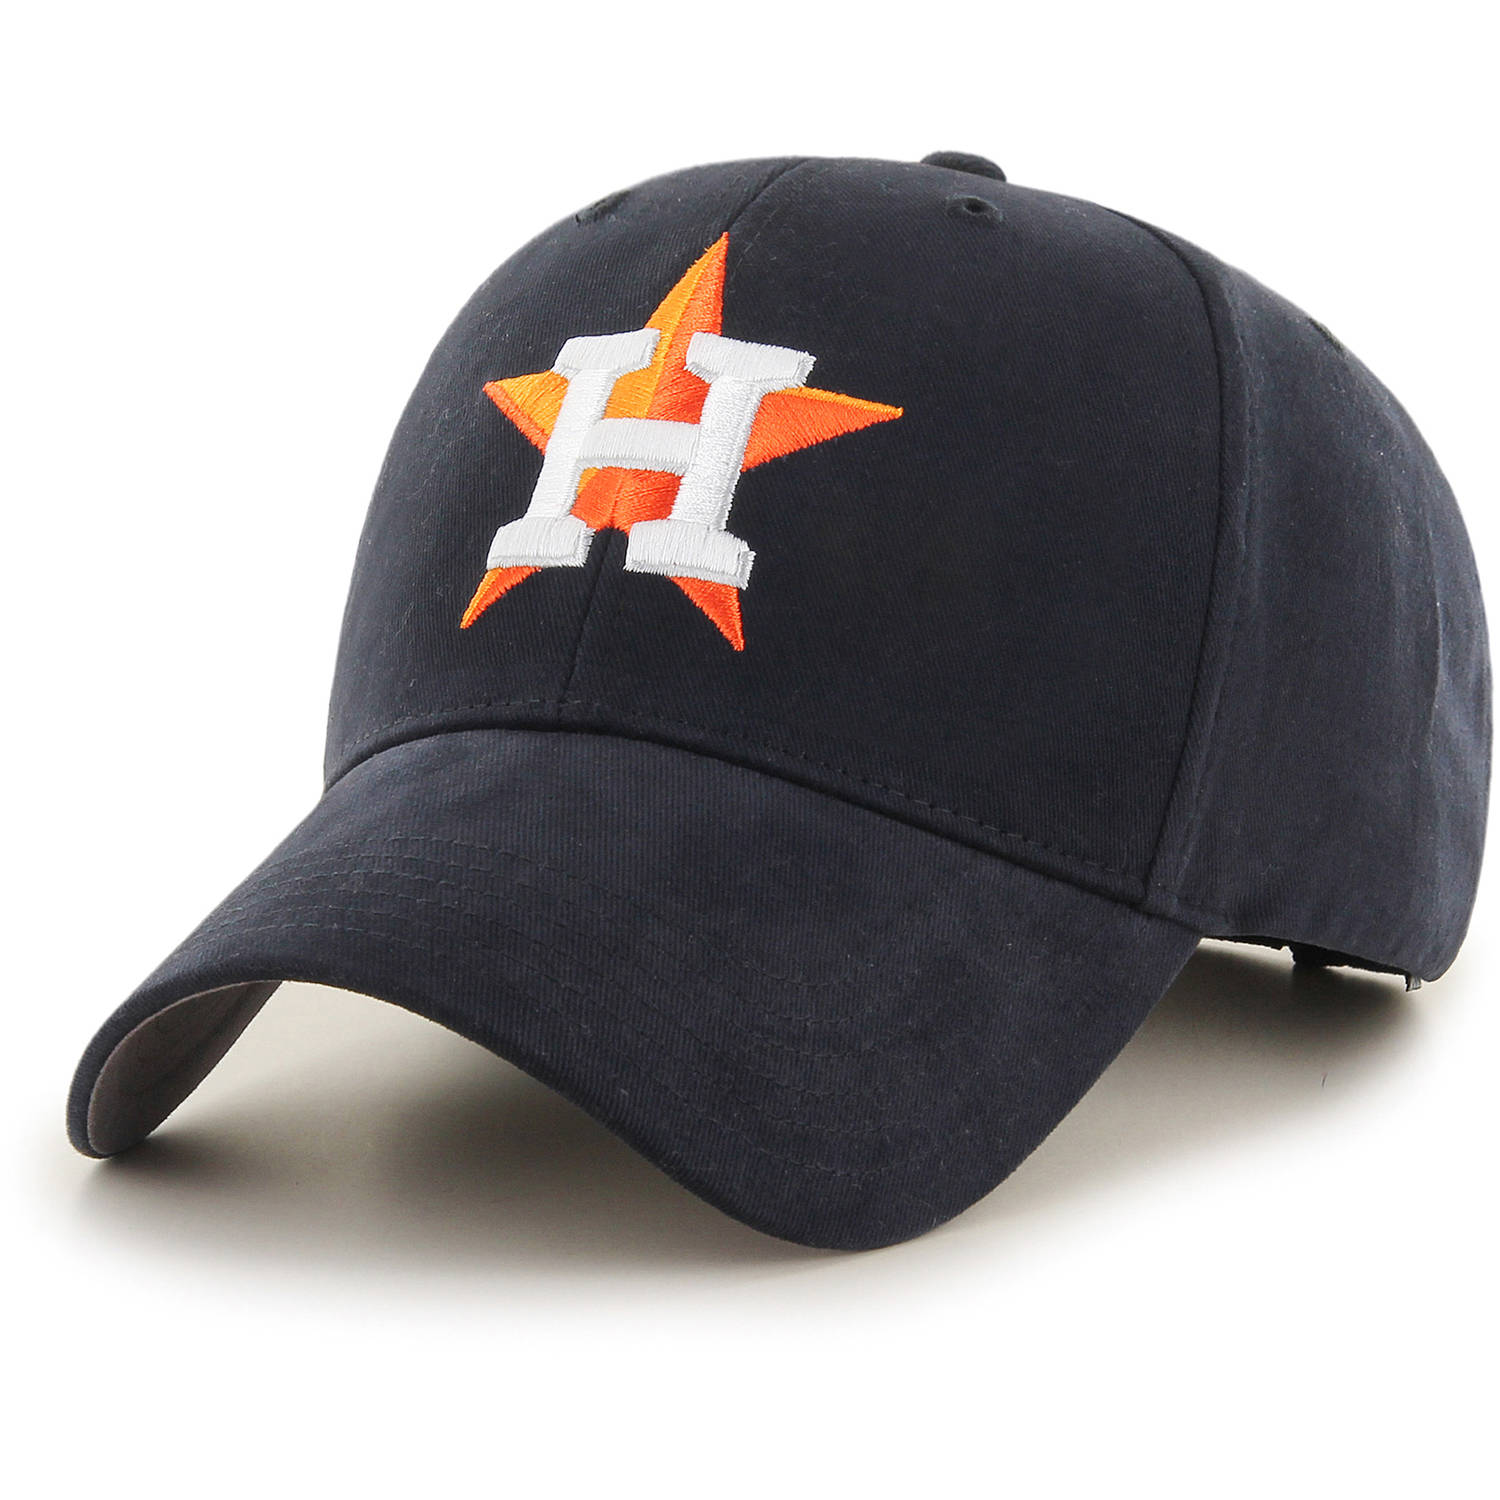 MLB Houston Astros Basic Youth Adjustable Cap/Hat by Fan Favorite